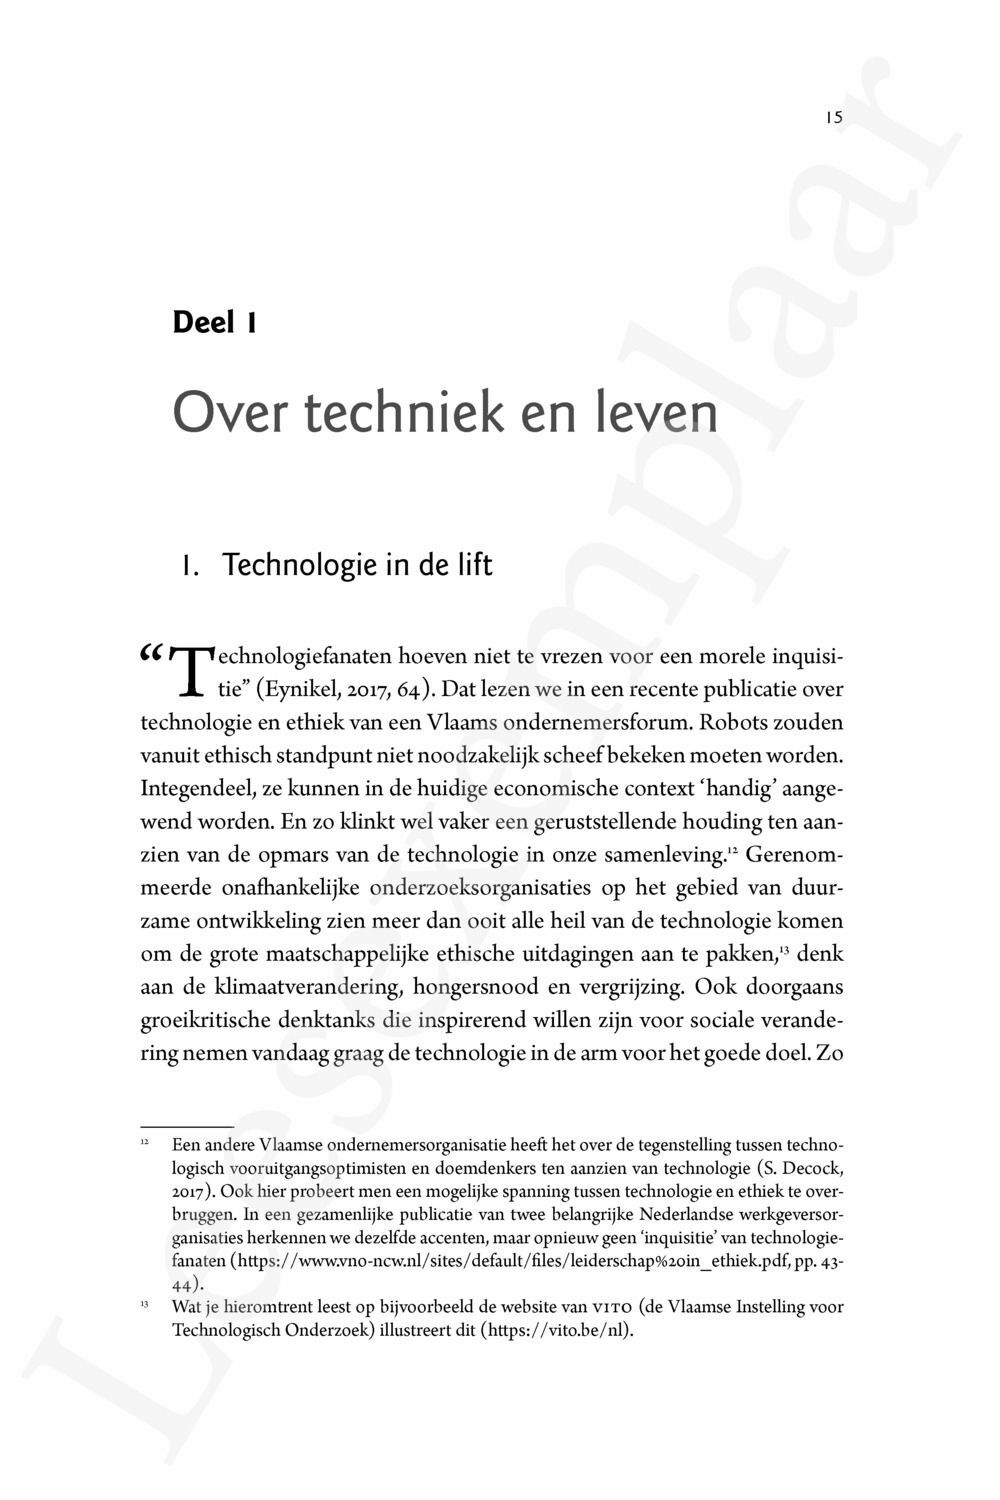 Preview: Zingeving in technologie